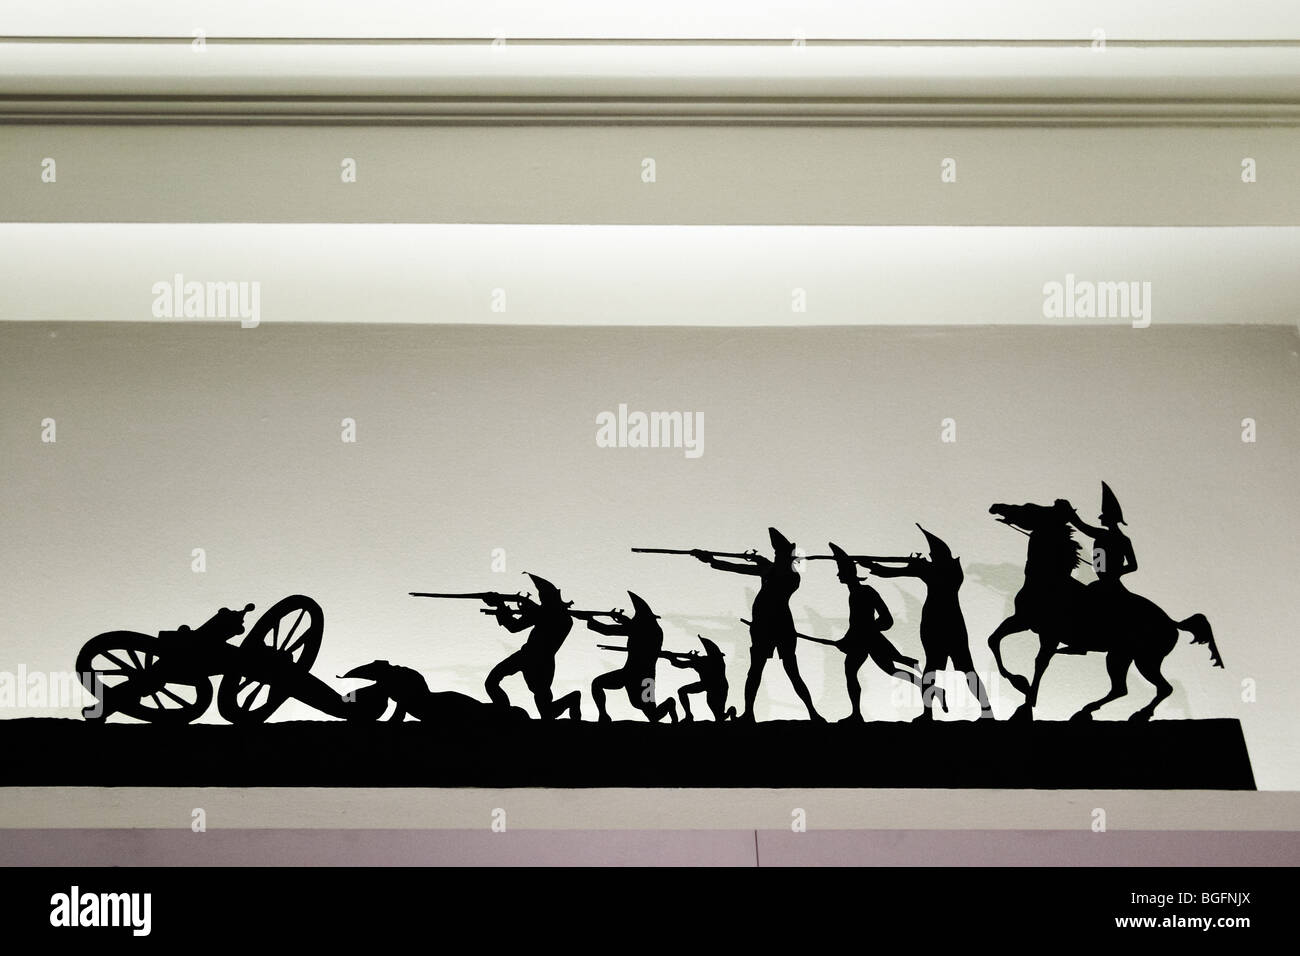 Metal silhouettes in the wall niches of the Department of Interior Museum, Washington, DC. Stock Photo